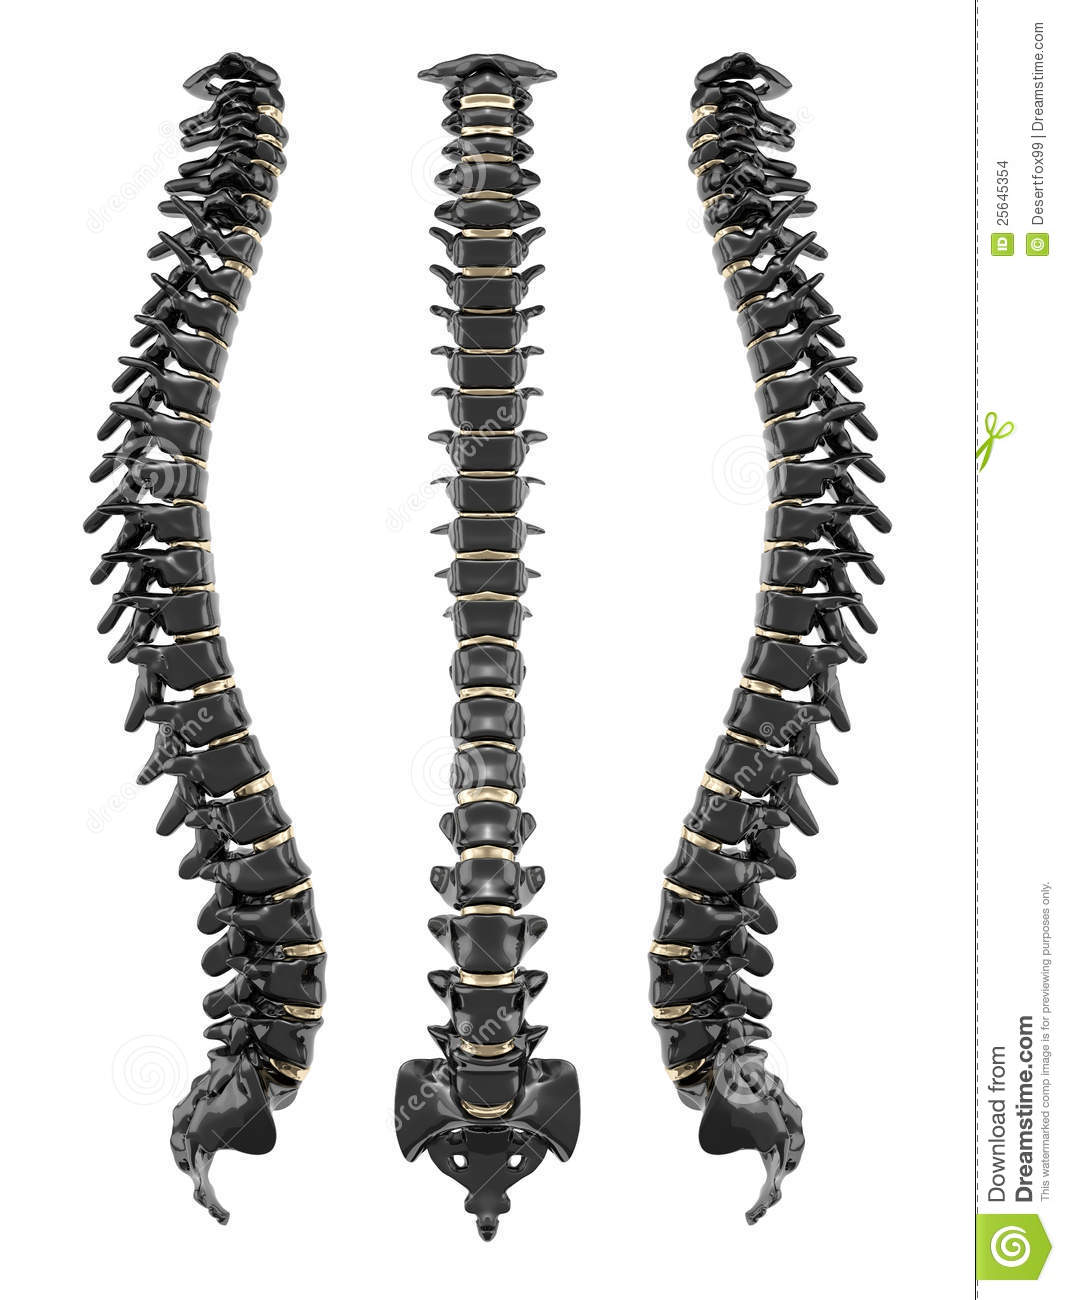 Human Spine Clipart 20 Free Cliparts